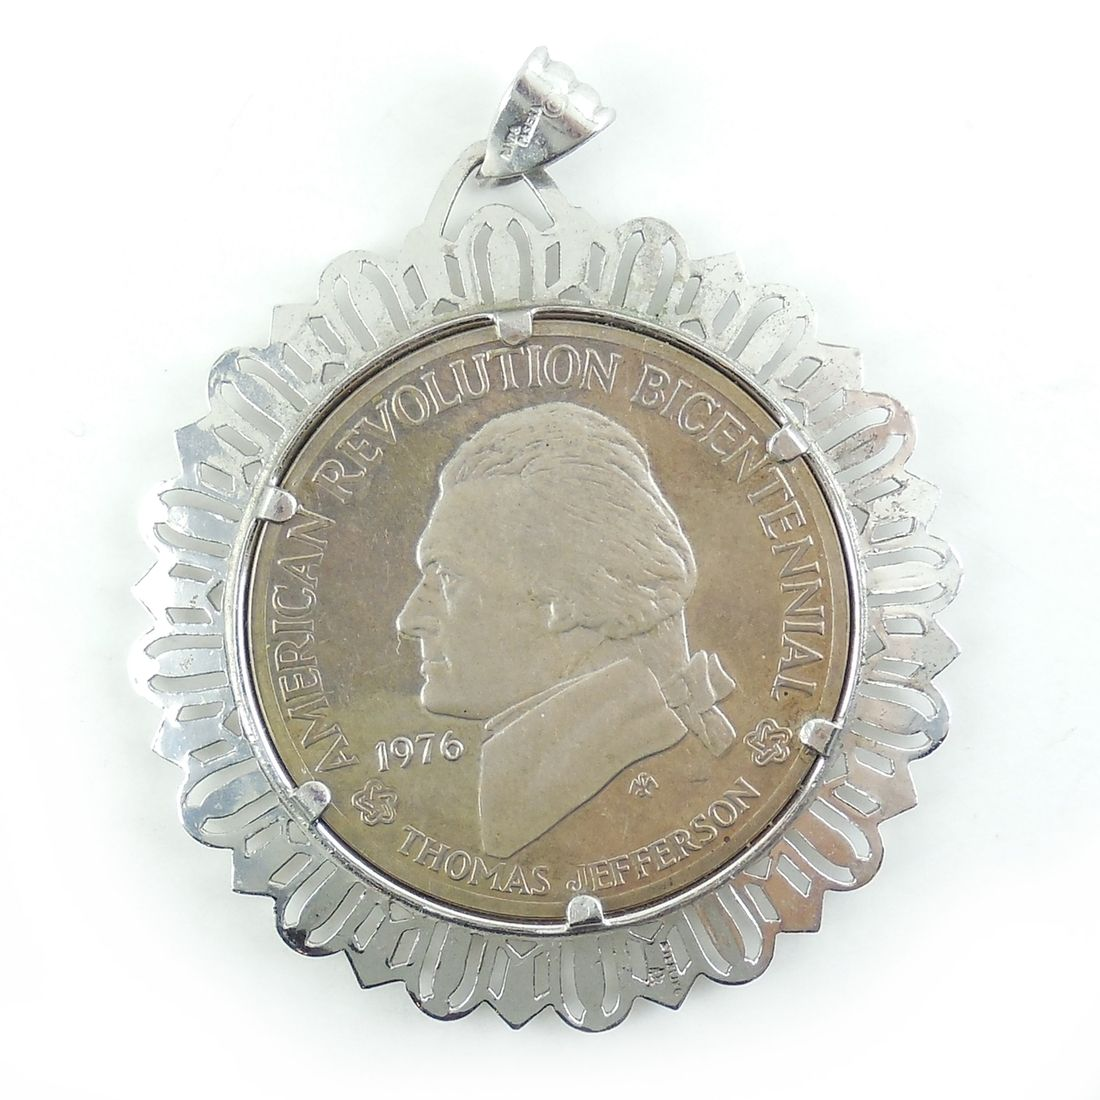 Vintage 1976 American Bicentennial Sterling Silver Coin Pendant. Find this item at Regalities.com, or click this link to view the item: http://regalities.com/product/vintage-1976-bicentennial-sterling-silver-big-heavy-coin-pendant/